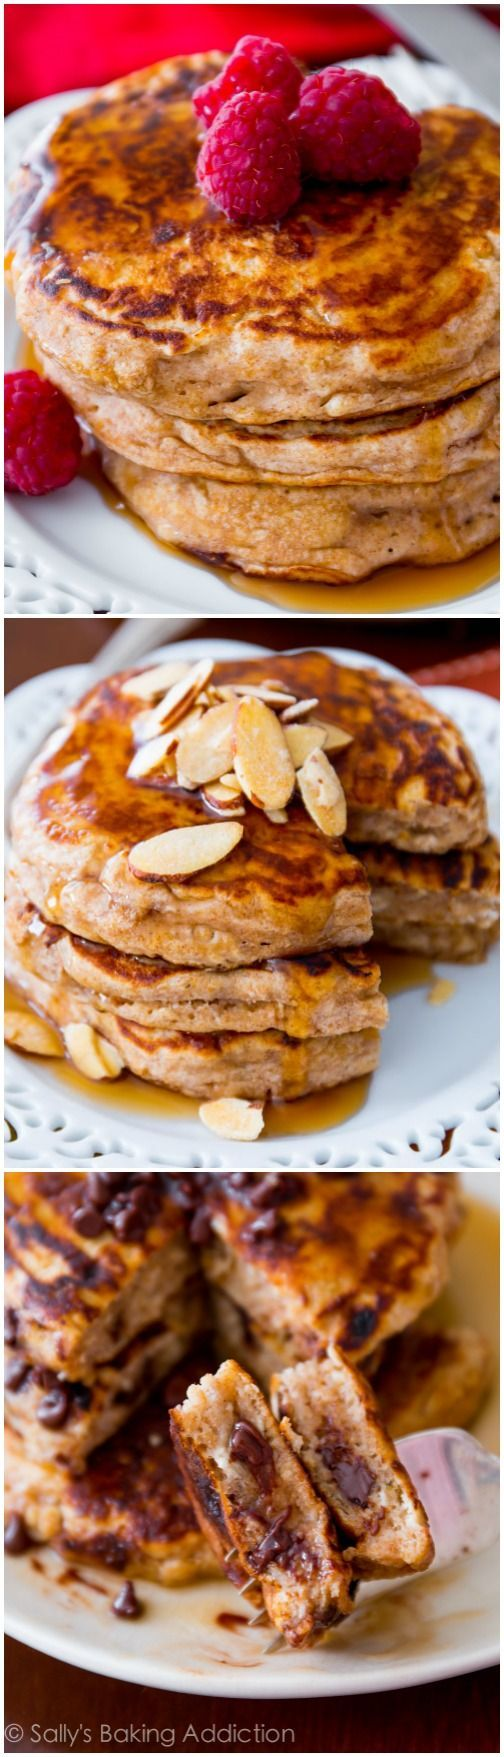 Healthy Whole Wheat Pancakes - that actually taste good. Made with Greek yogurt, oats, whole wheat flour - delicous!